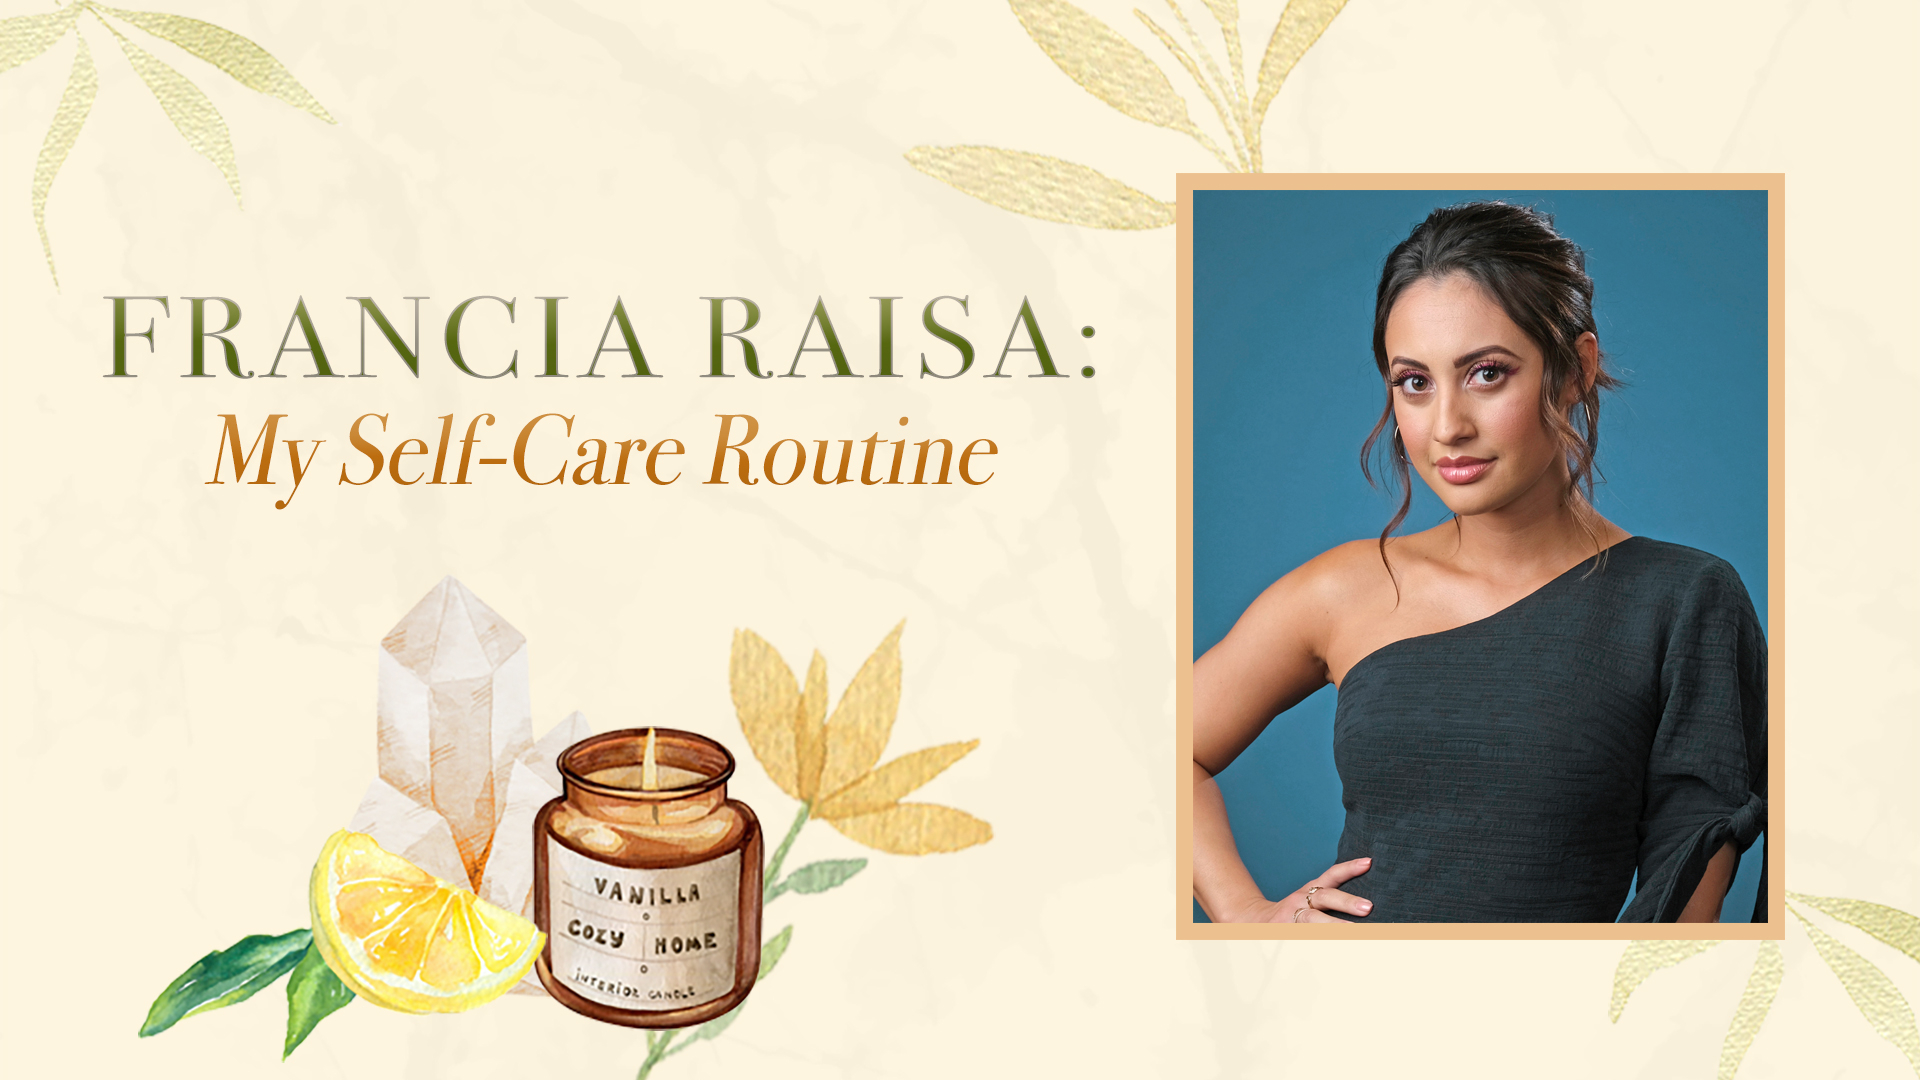 Francia Raisa: My Self-Care Routine, Wellness Wednesdays